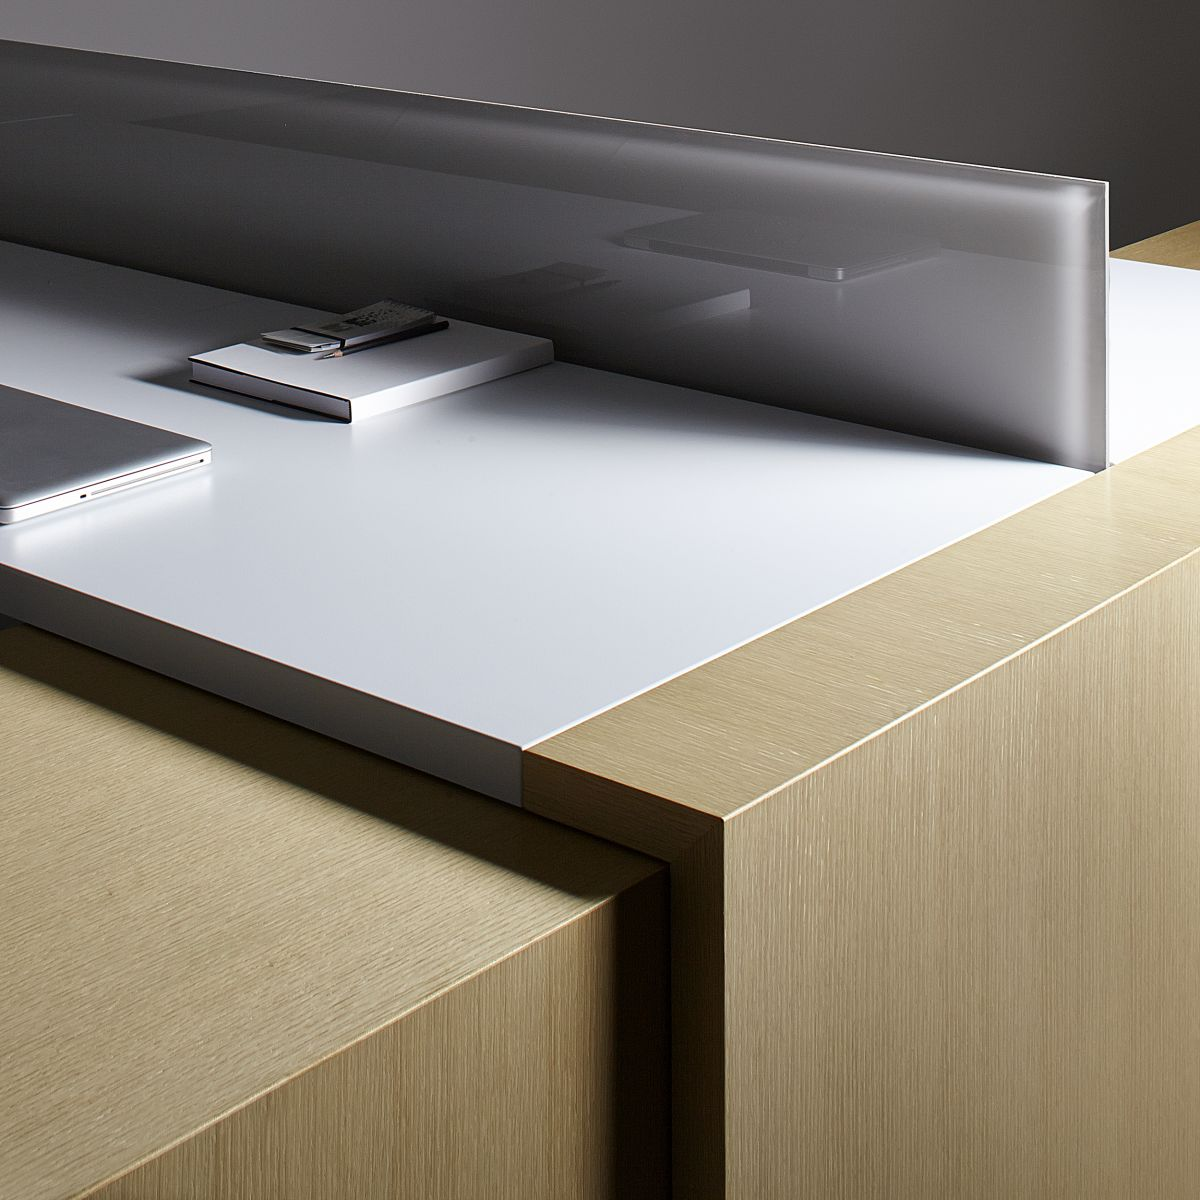 Seamless mitered joinery and perfectly balanced veneers highlight our craft and our quality.